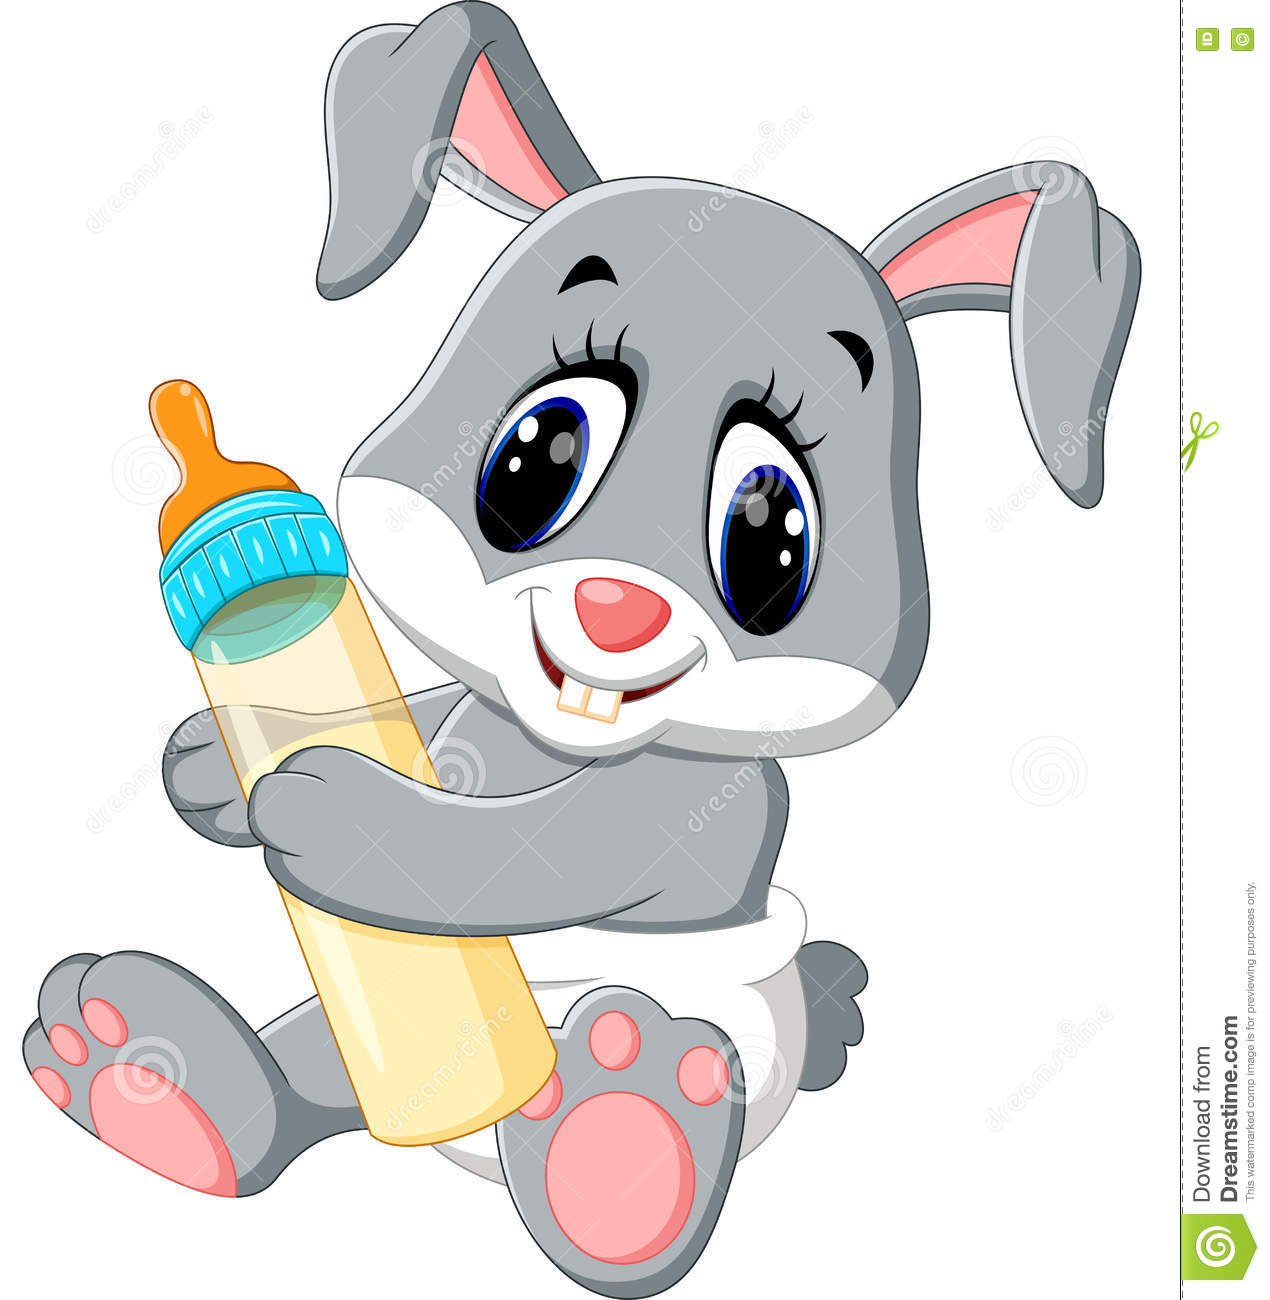 Stock Illustration Cute Baby Rabbit Cartoon Illustration Image71796543